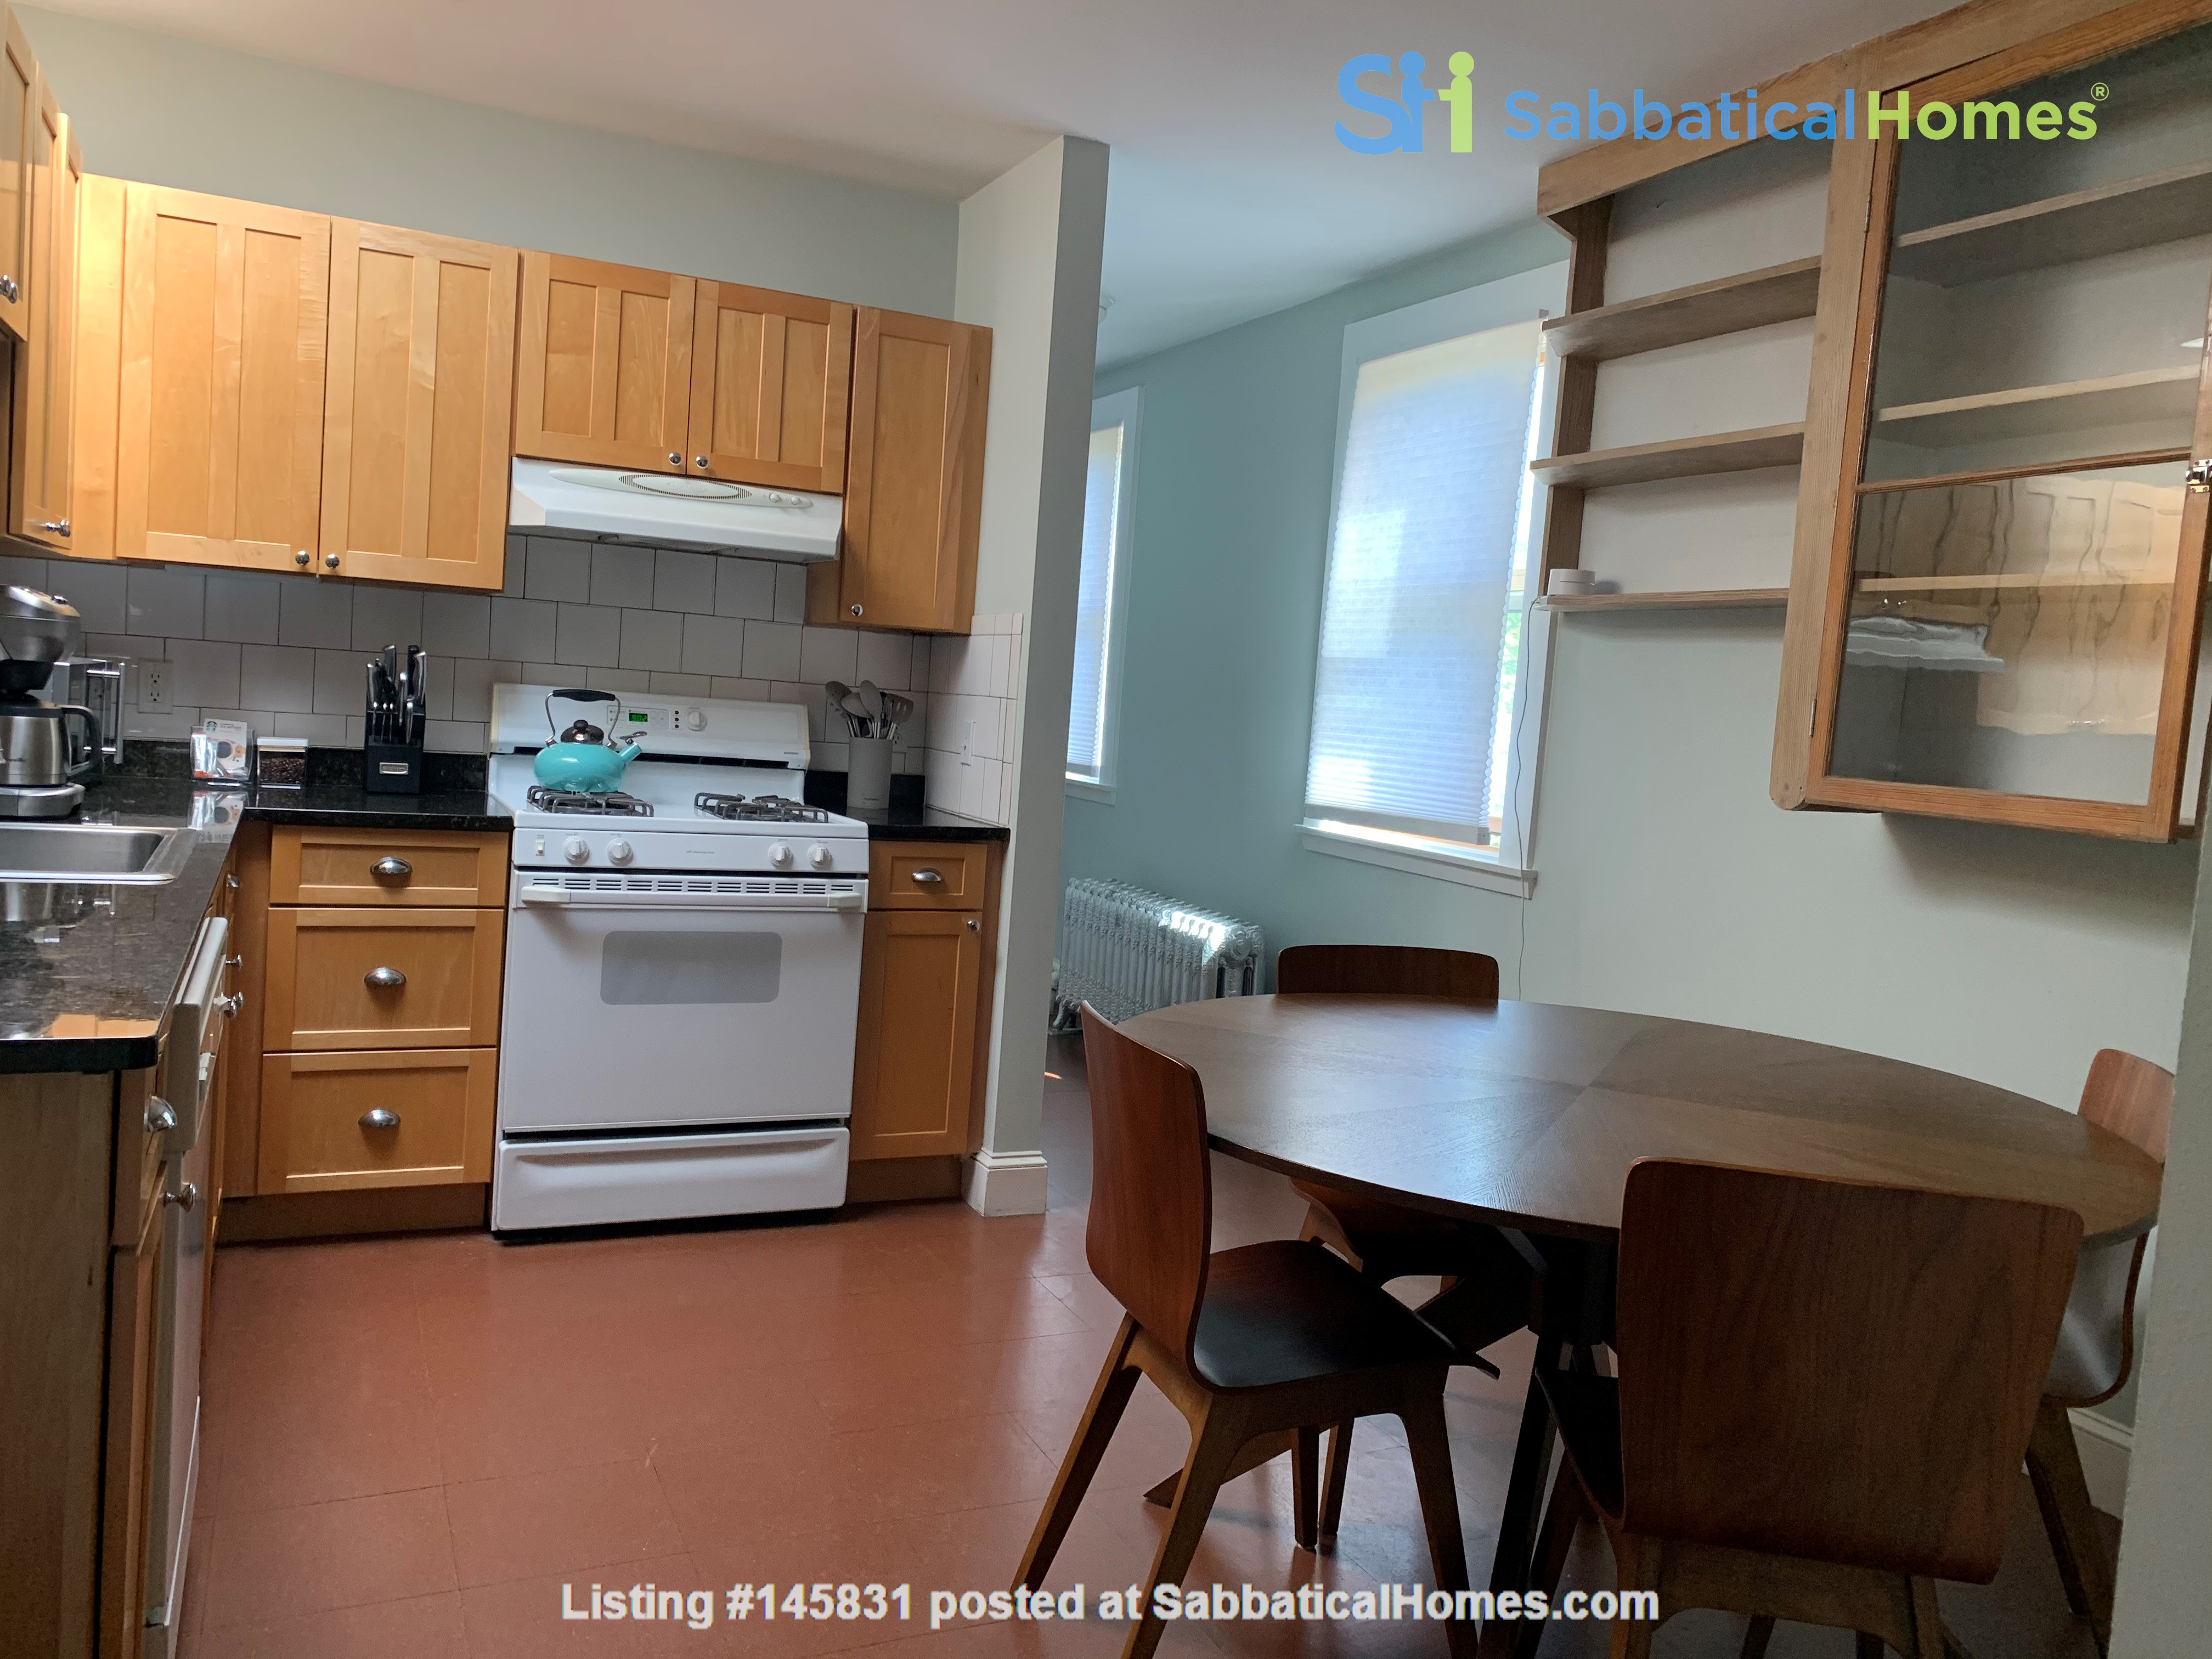 Harvard MIT HKS HBS! Fully furnished all utilities! Pets OK! No fee! Home Rental in Cambridge 4